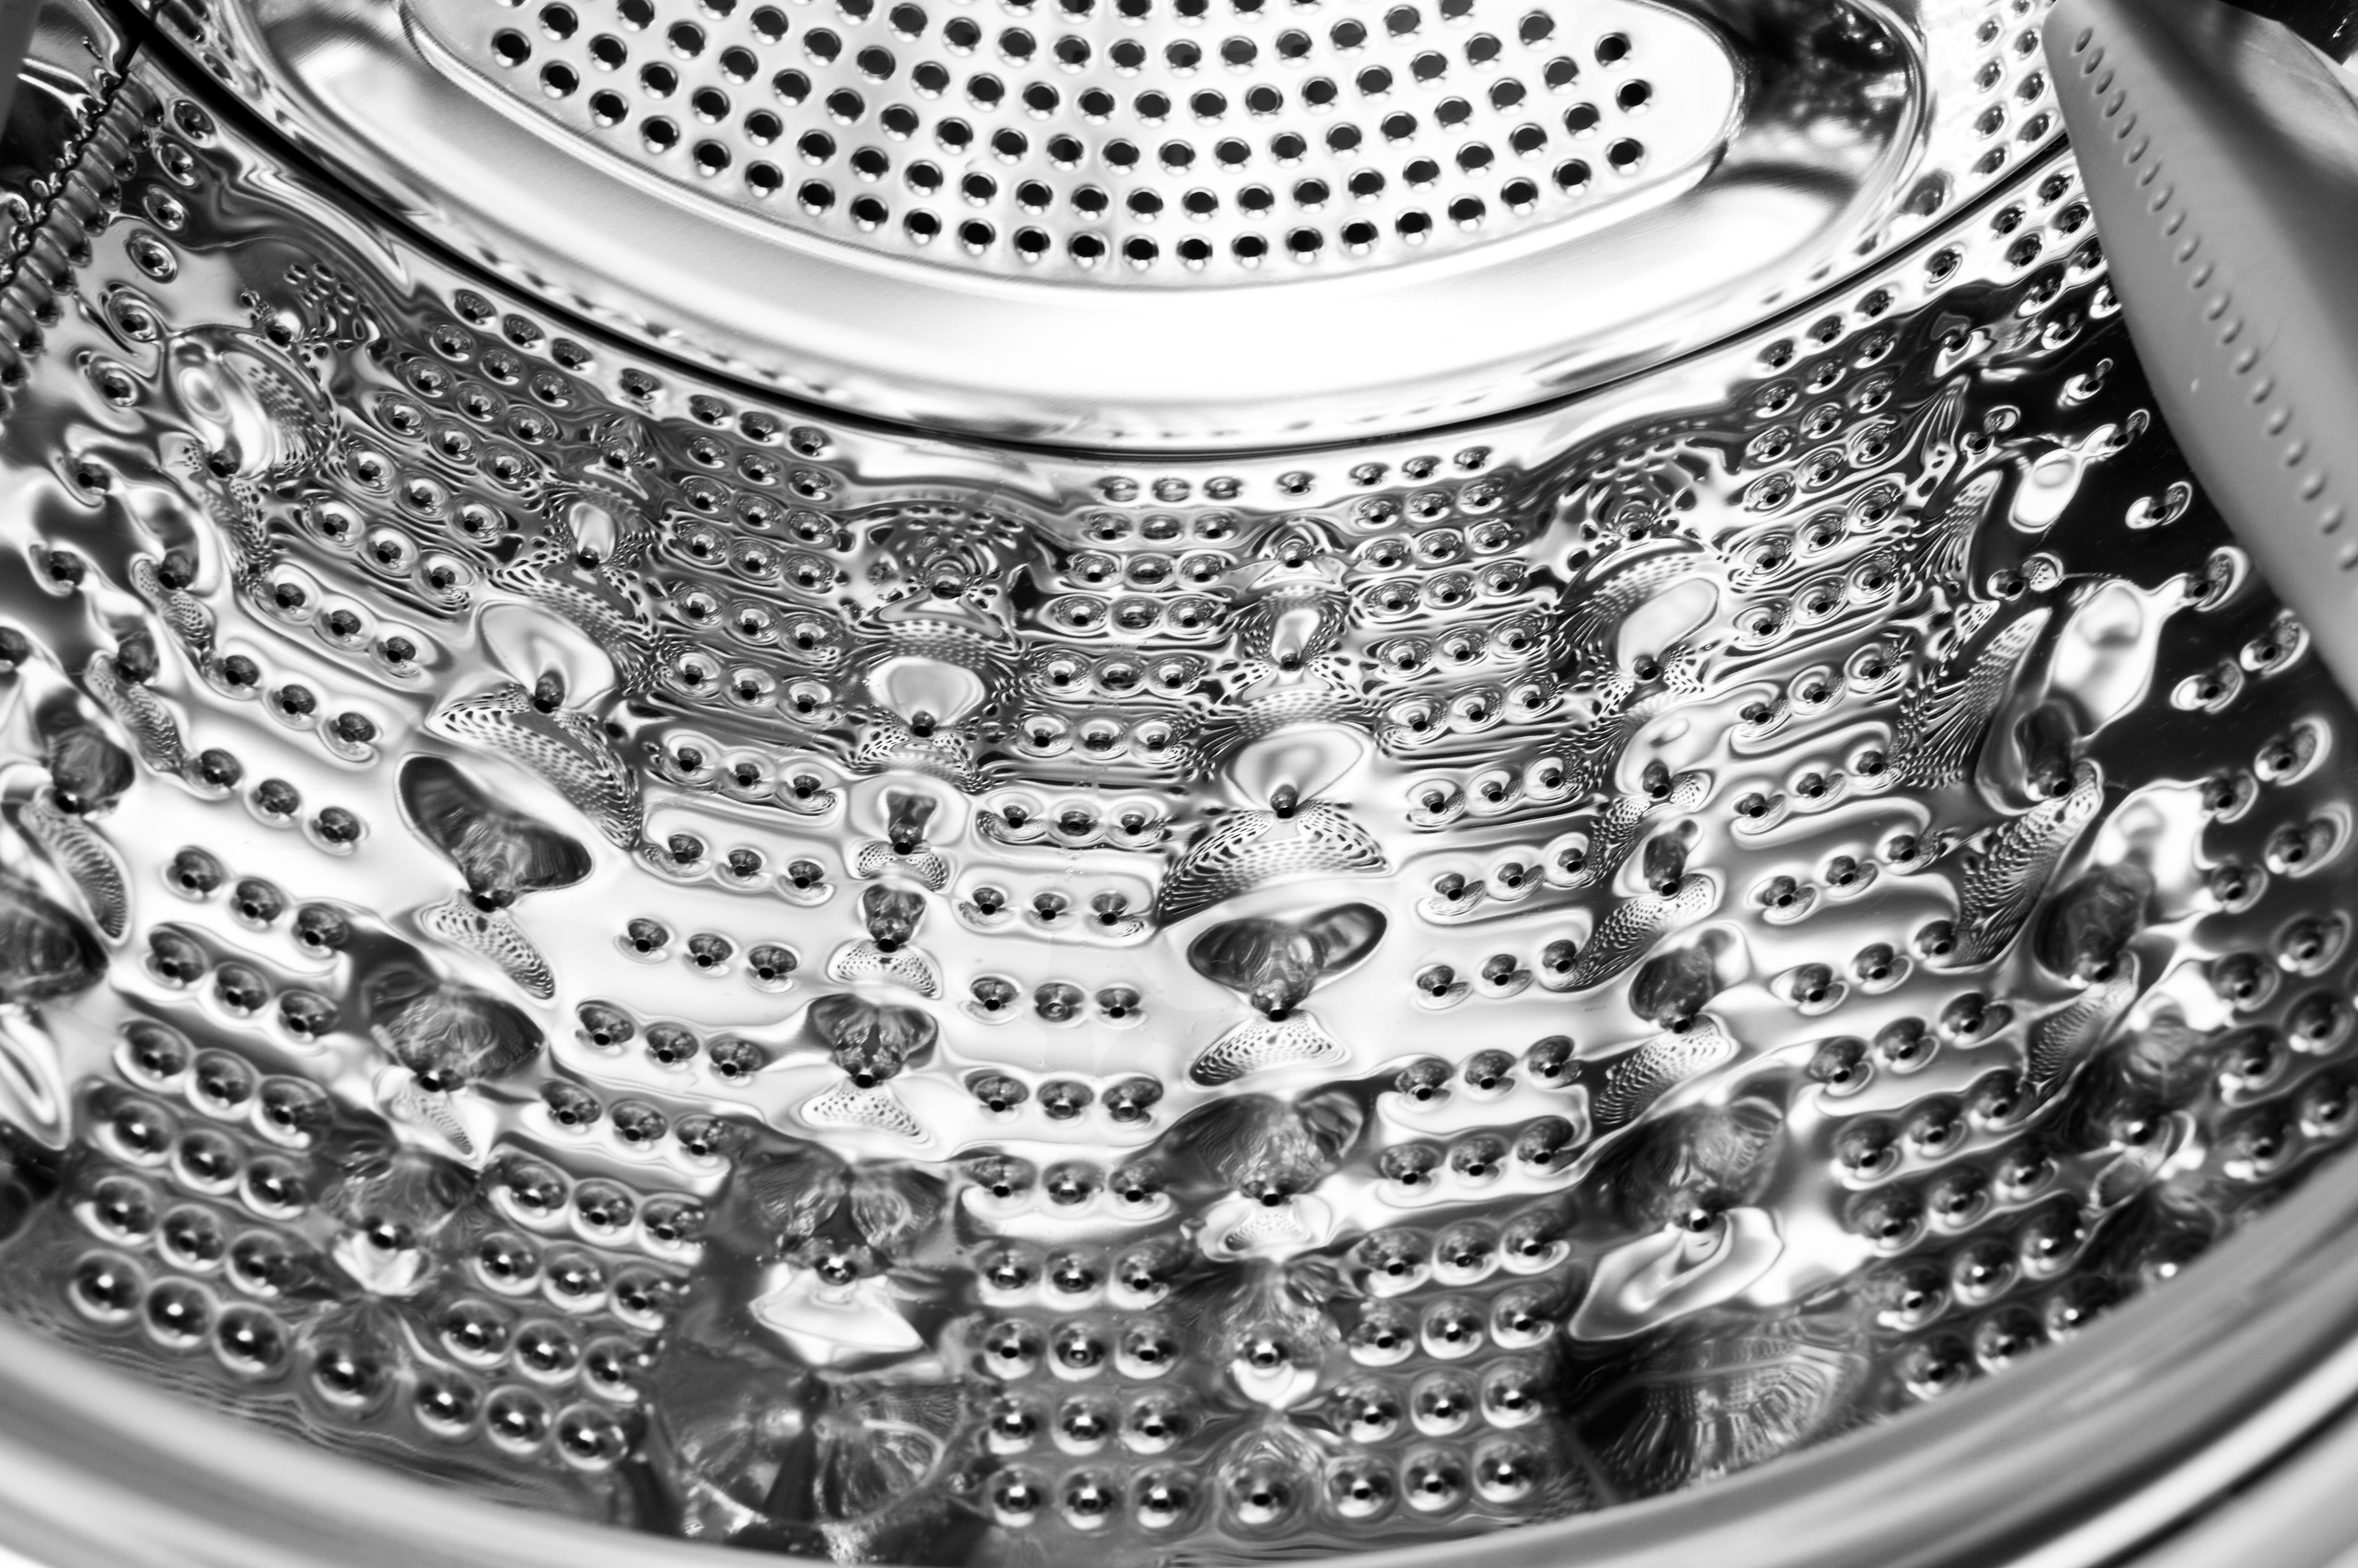 The bubbles in the stainless-steel drum help clean your clothes without destroying them.